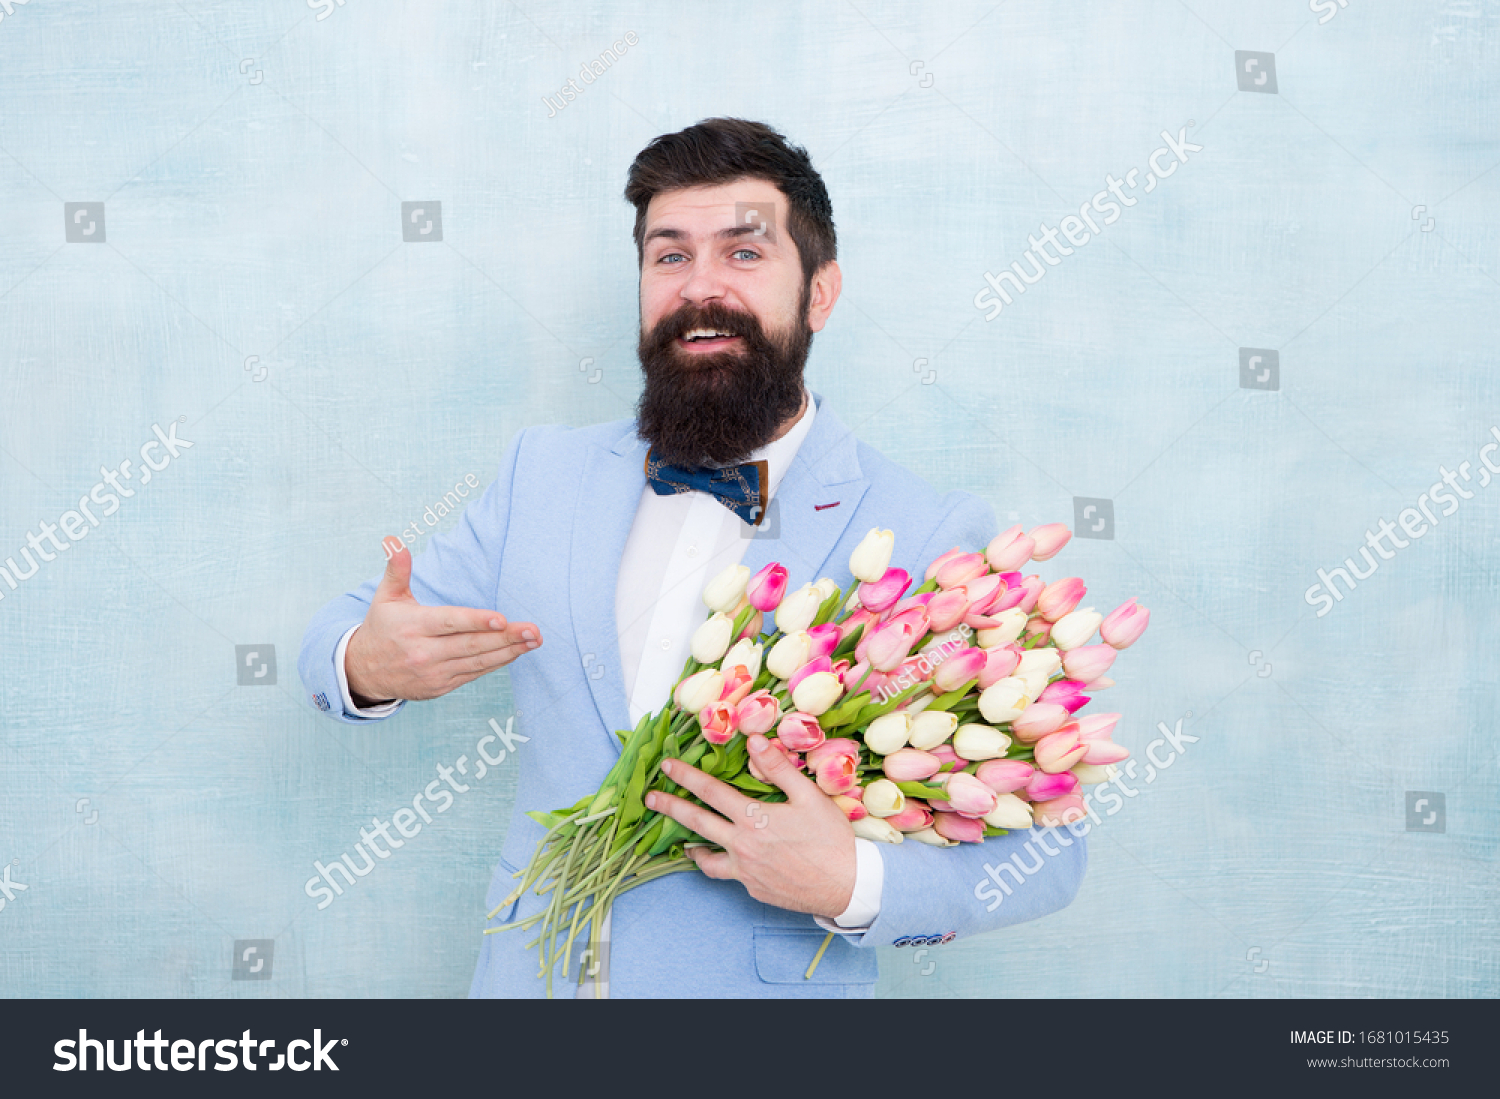 Tulips for Valentine. Happy hipster presenting flowers blue background. Valentines bunch. Valentine gift. My love, my Valentine. Be my Valentine. Flower shop. Floral delivery on Valentines day. #1681015435